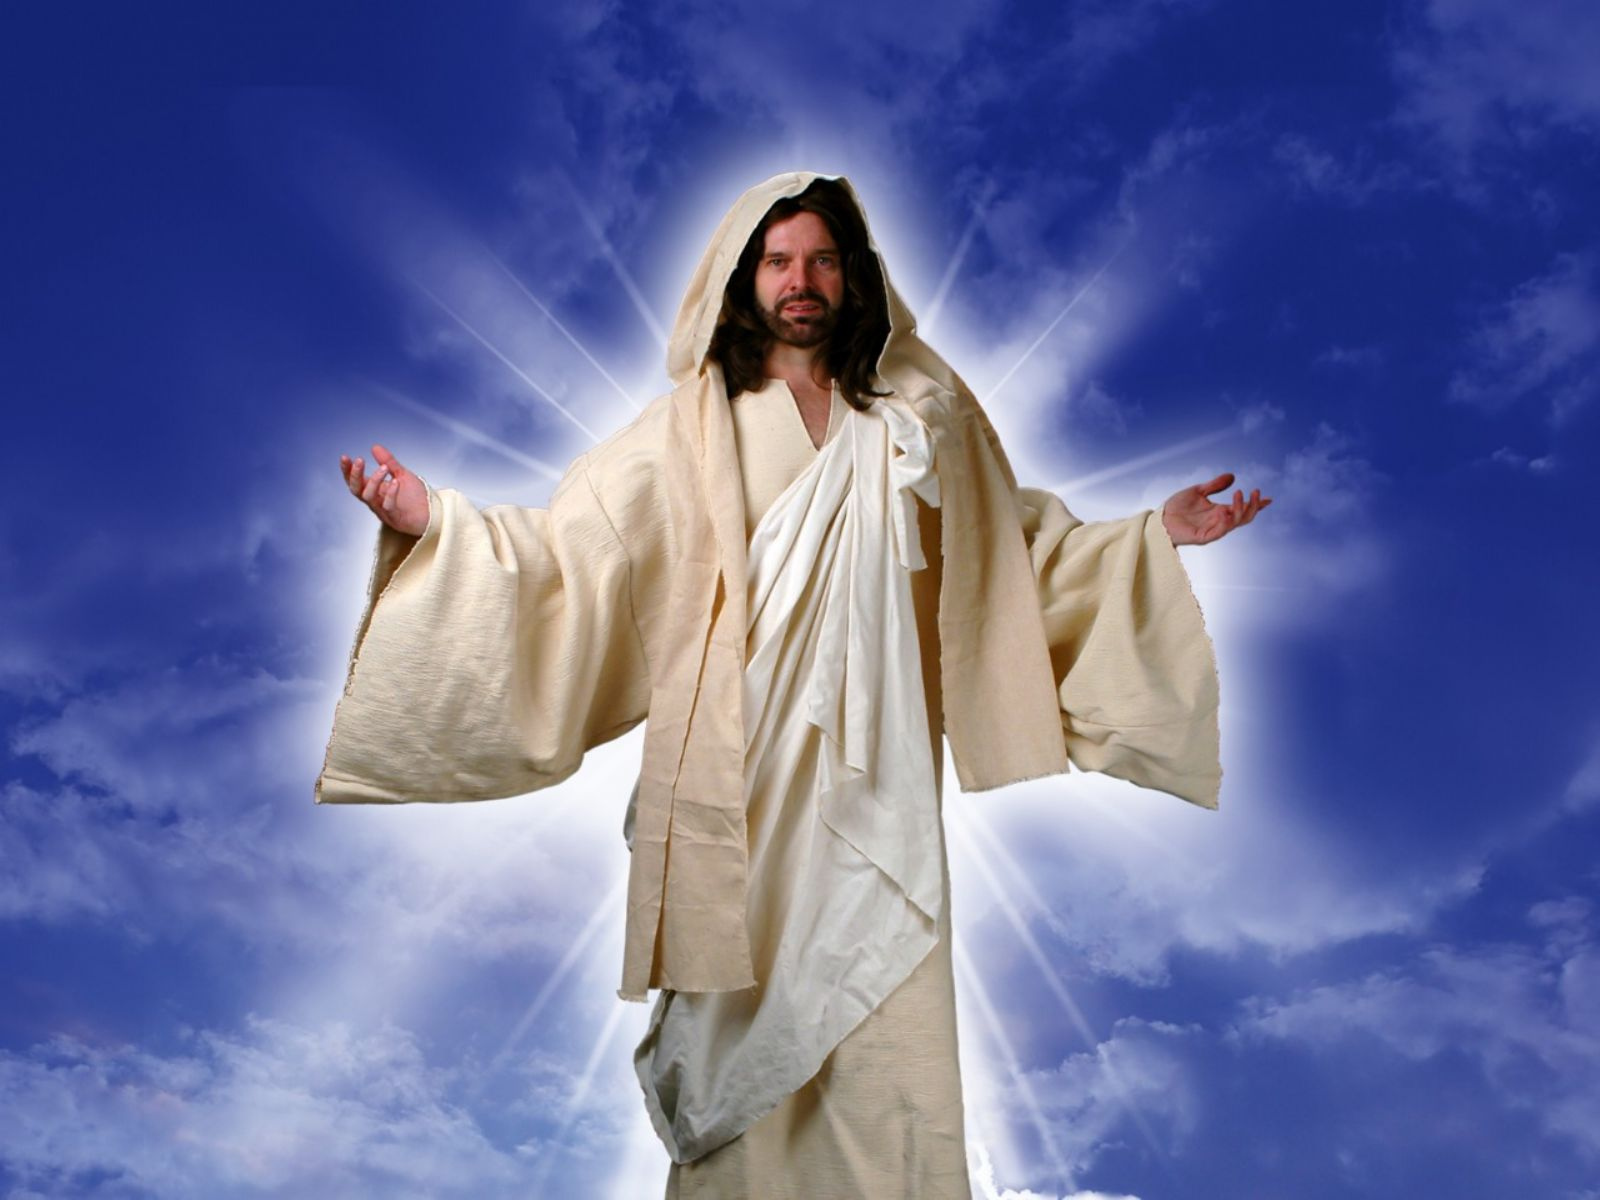 Lord Jesus HD Wallpapers ~ God wallpaper hd